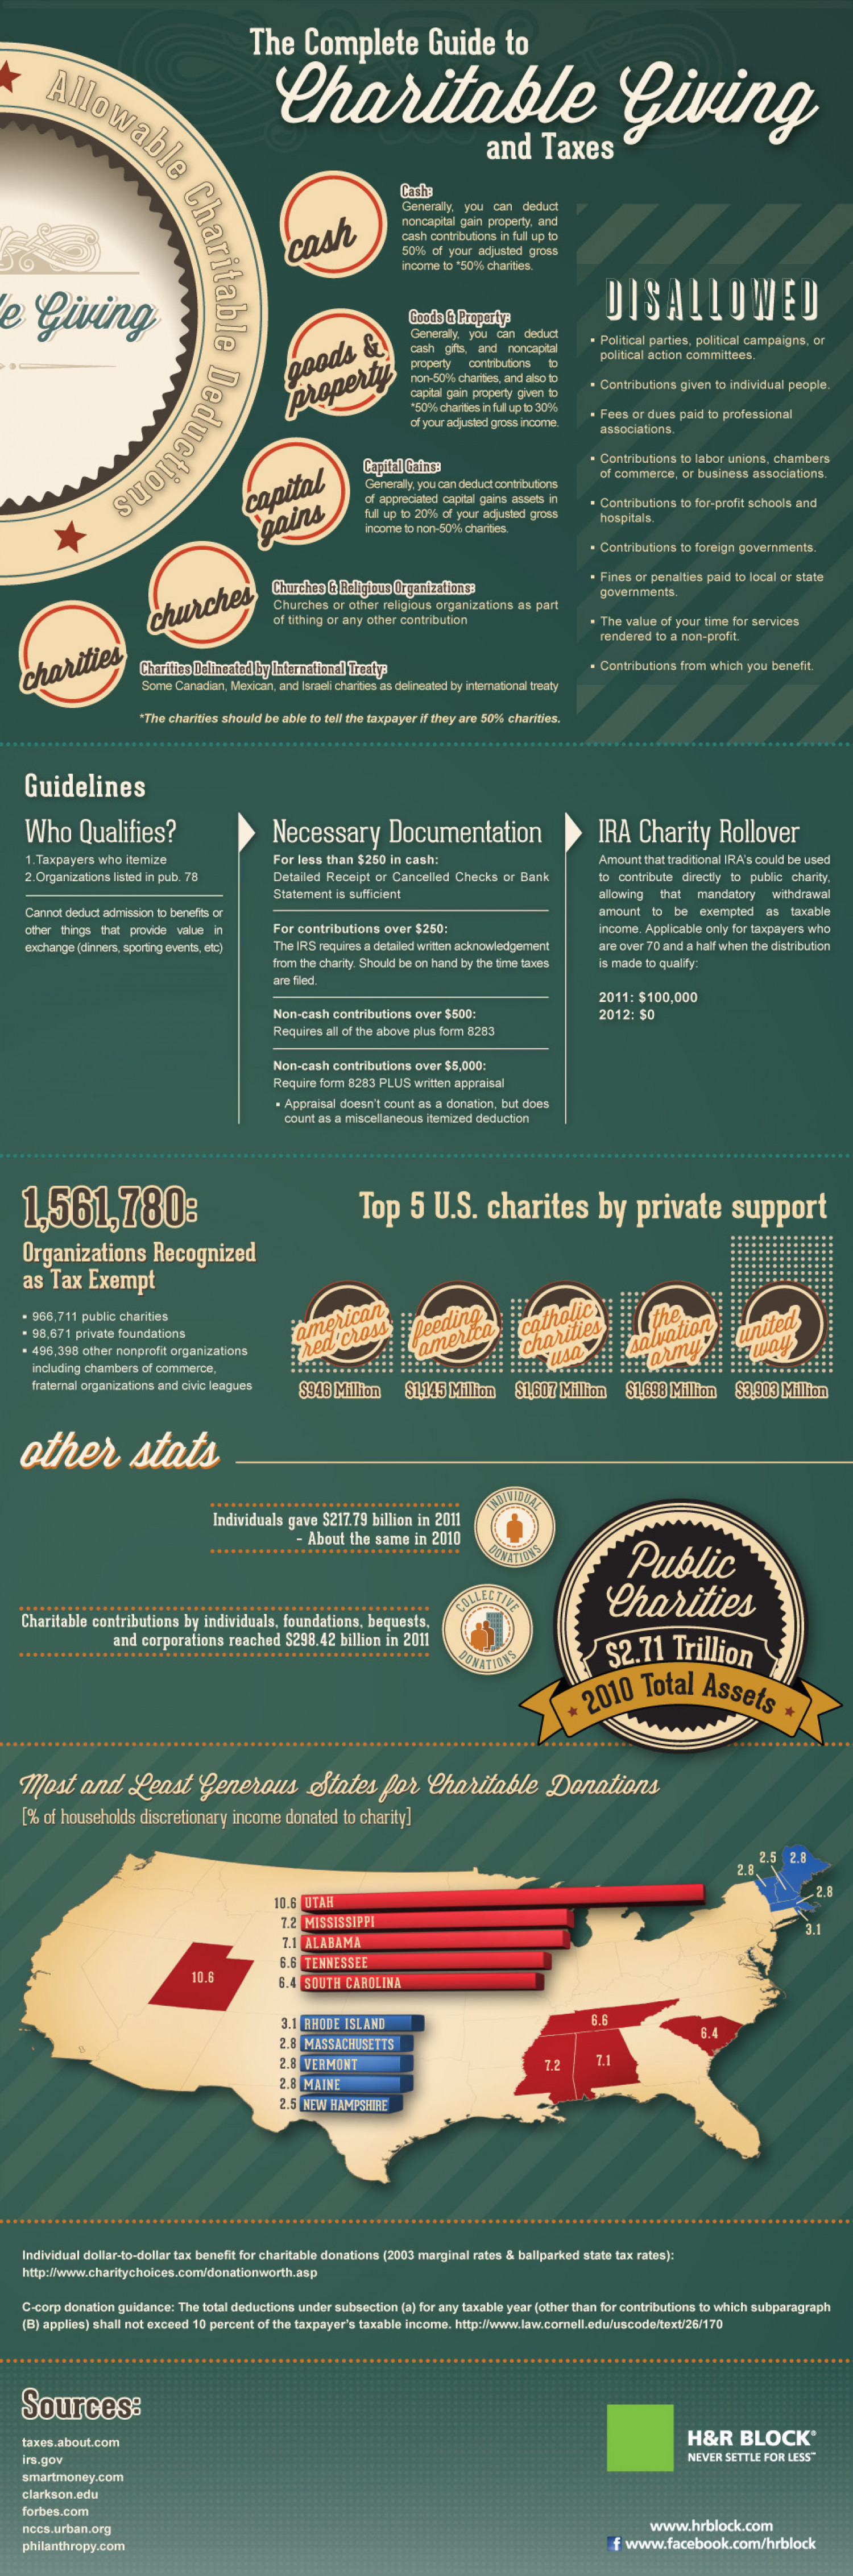 The Complete Guide To Charitable Giving and Your Taxes Infographic